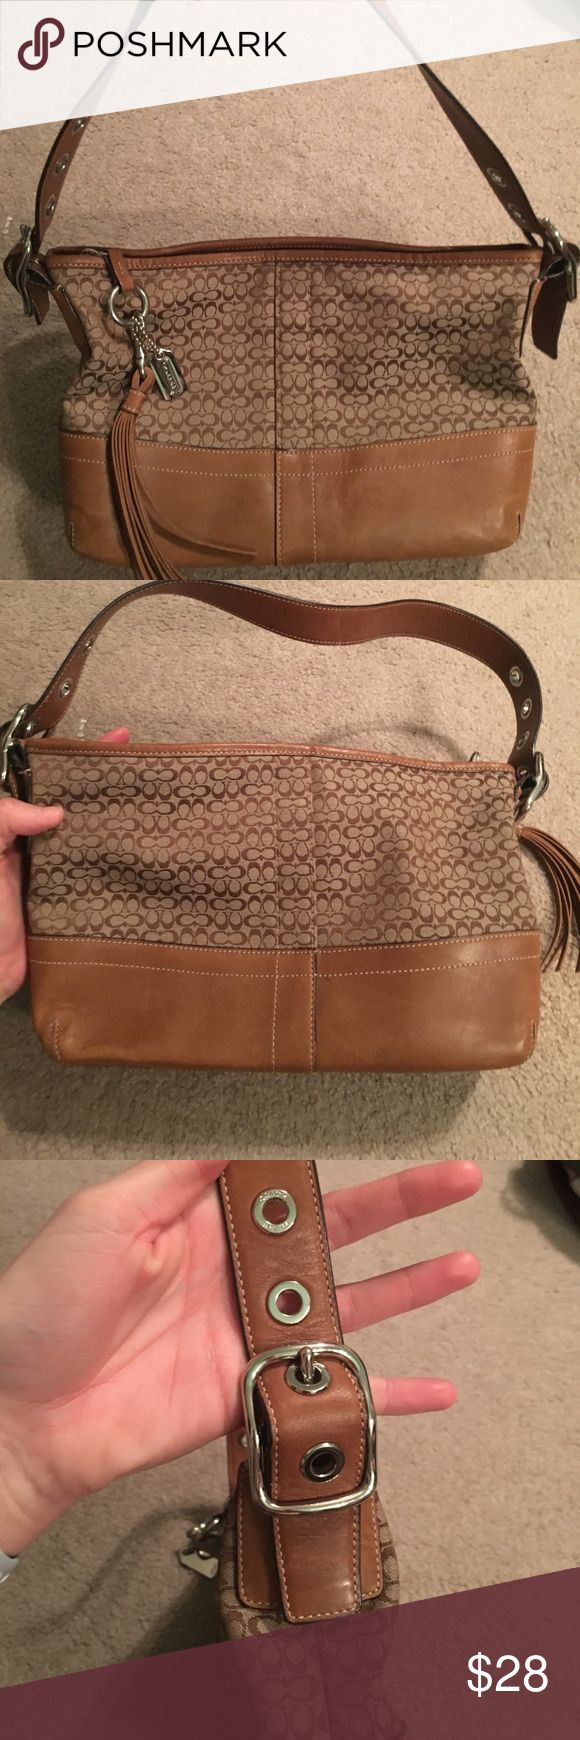 Tan and Brown Canvas and Leather Coach Purse Good condition. Wear to exterior leather like scratching and rubbing. Interior is clean! Coach Bags